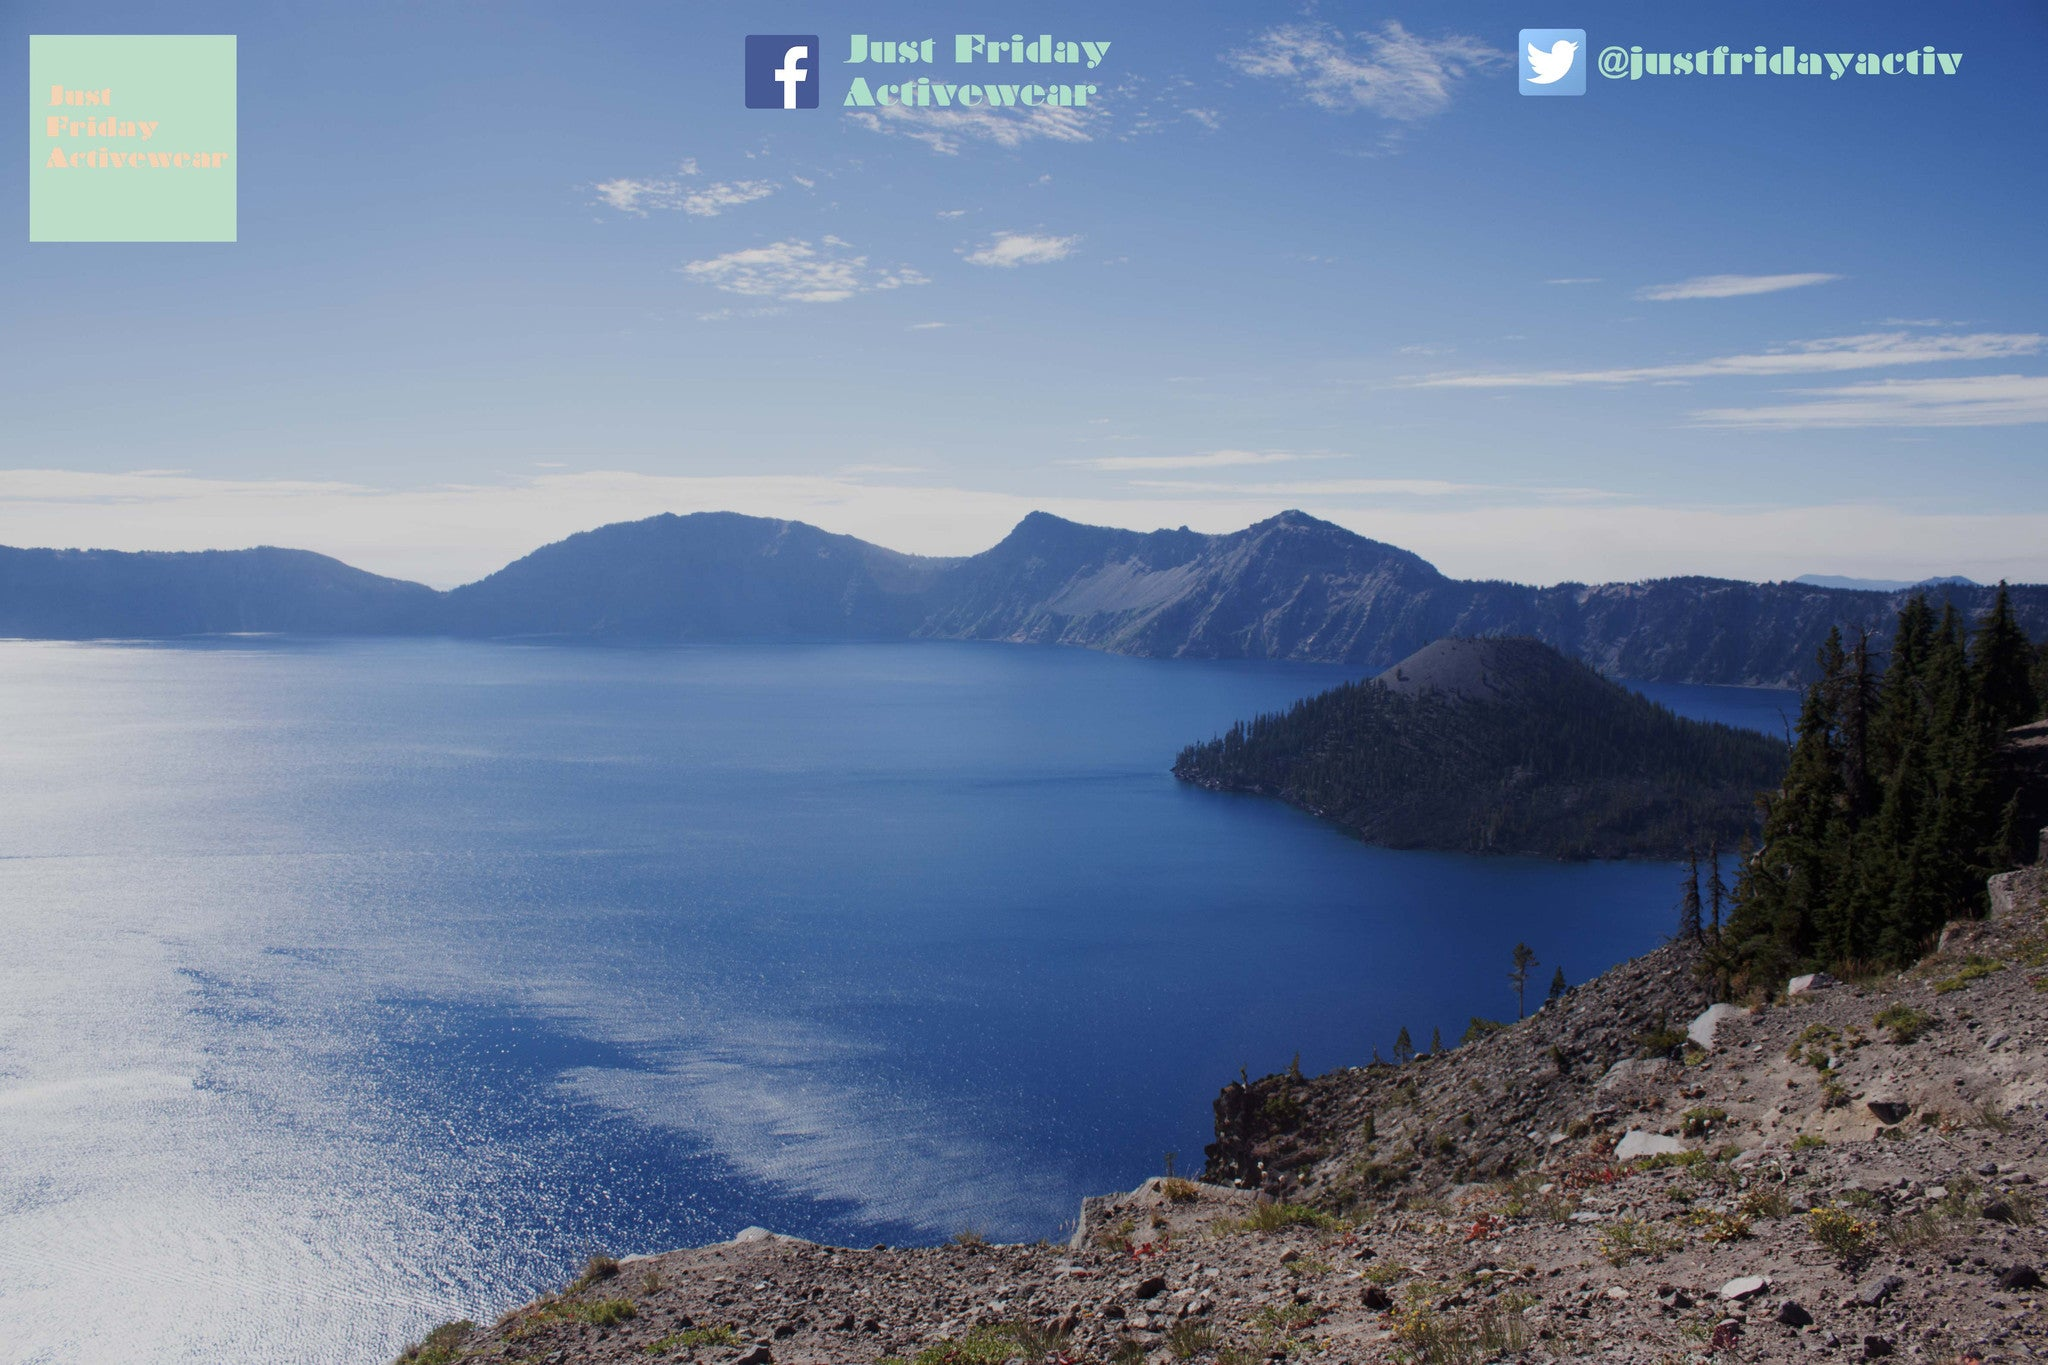 Hike on Crater Lake